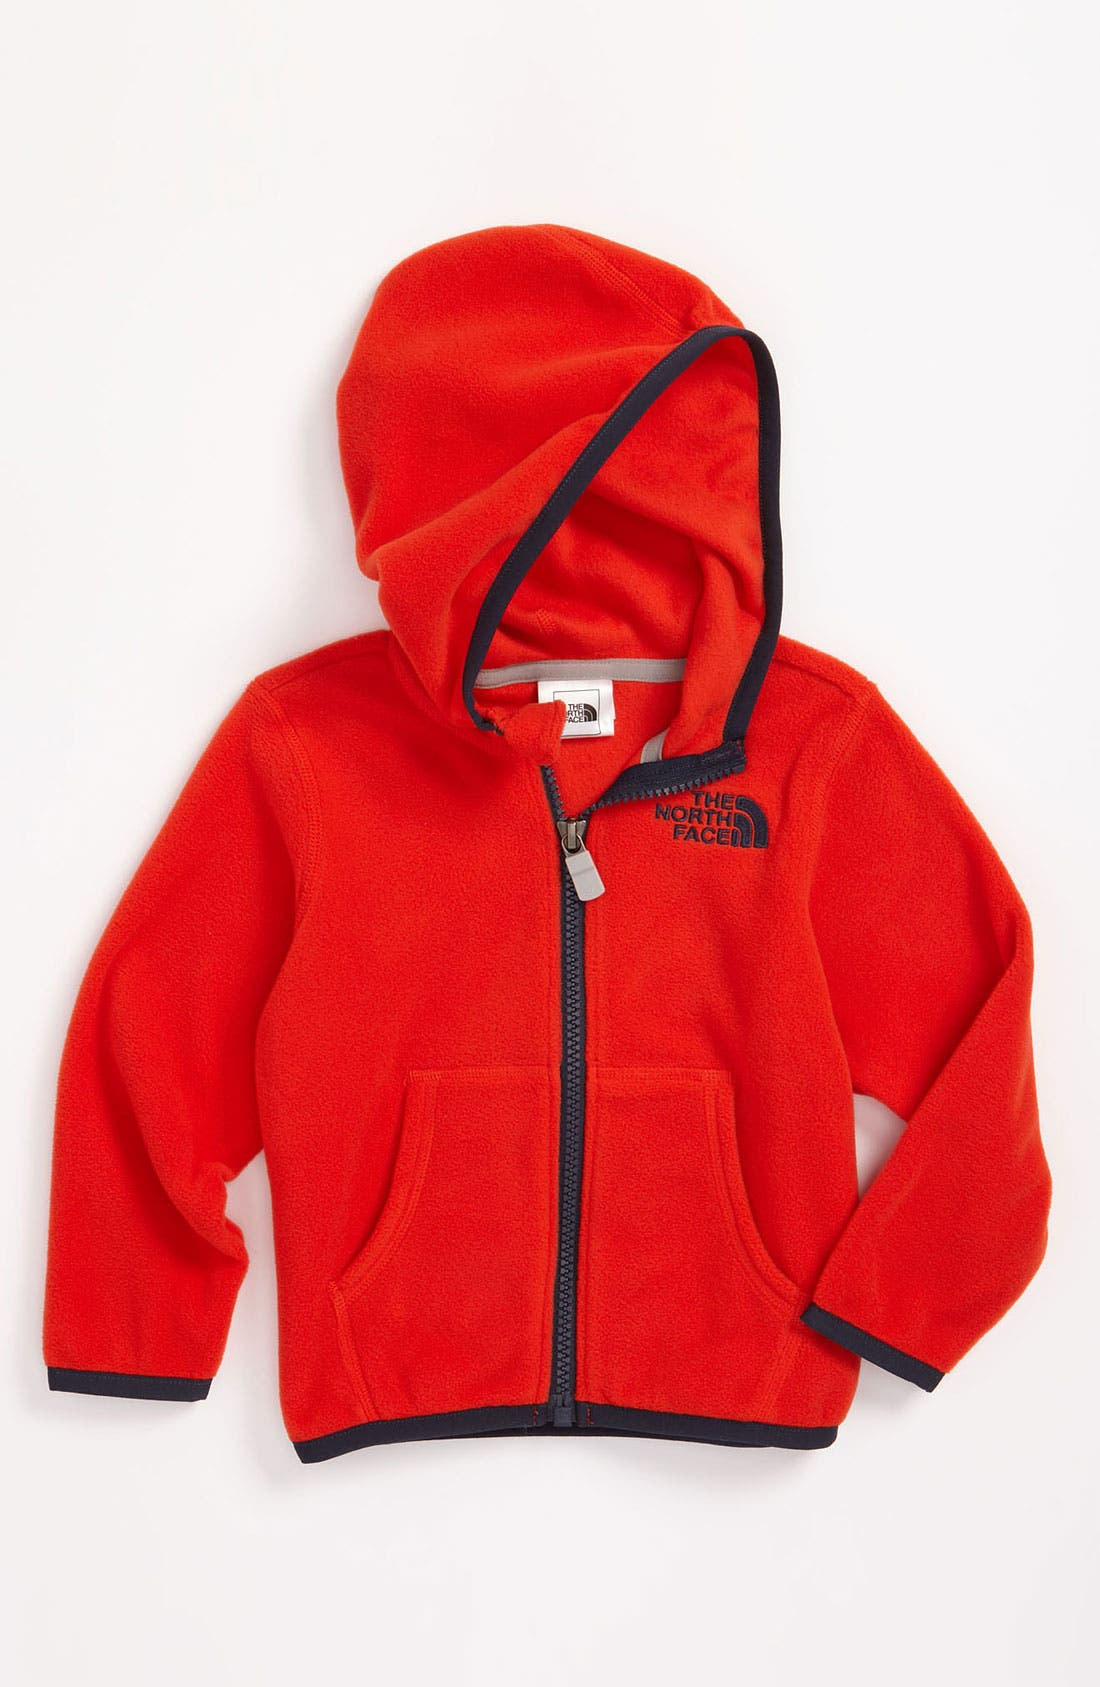 Main Image - The North Face 'Glacier' Fleece Jacket (Baby)